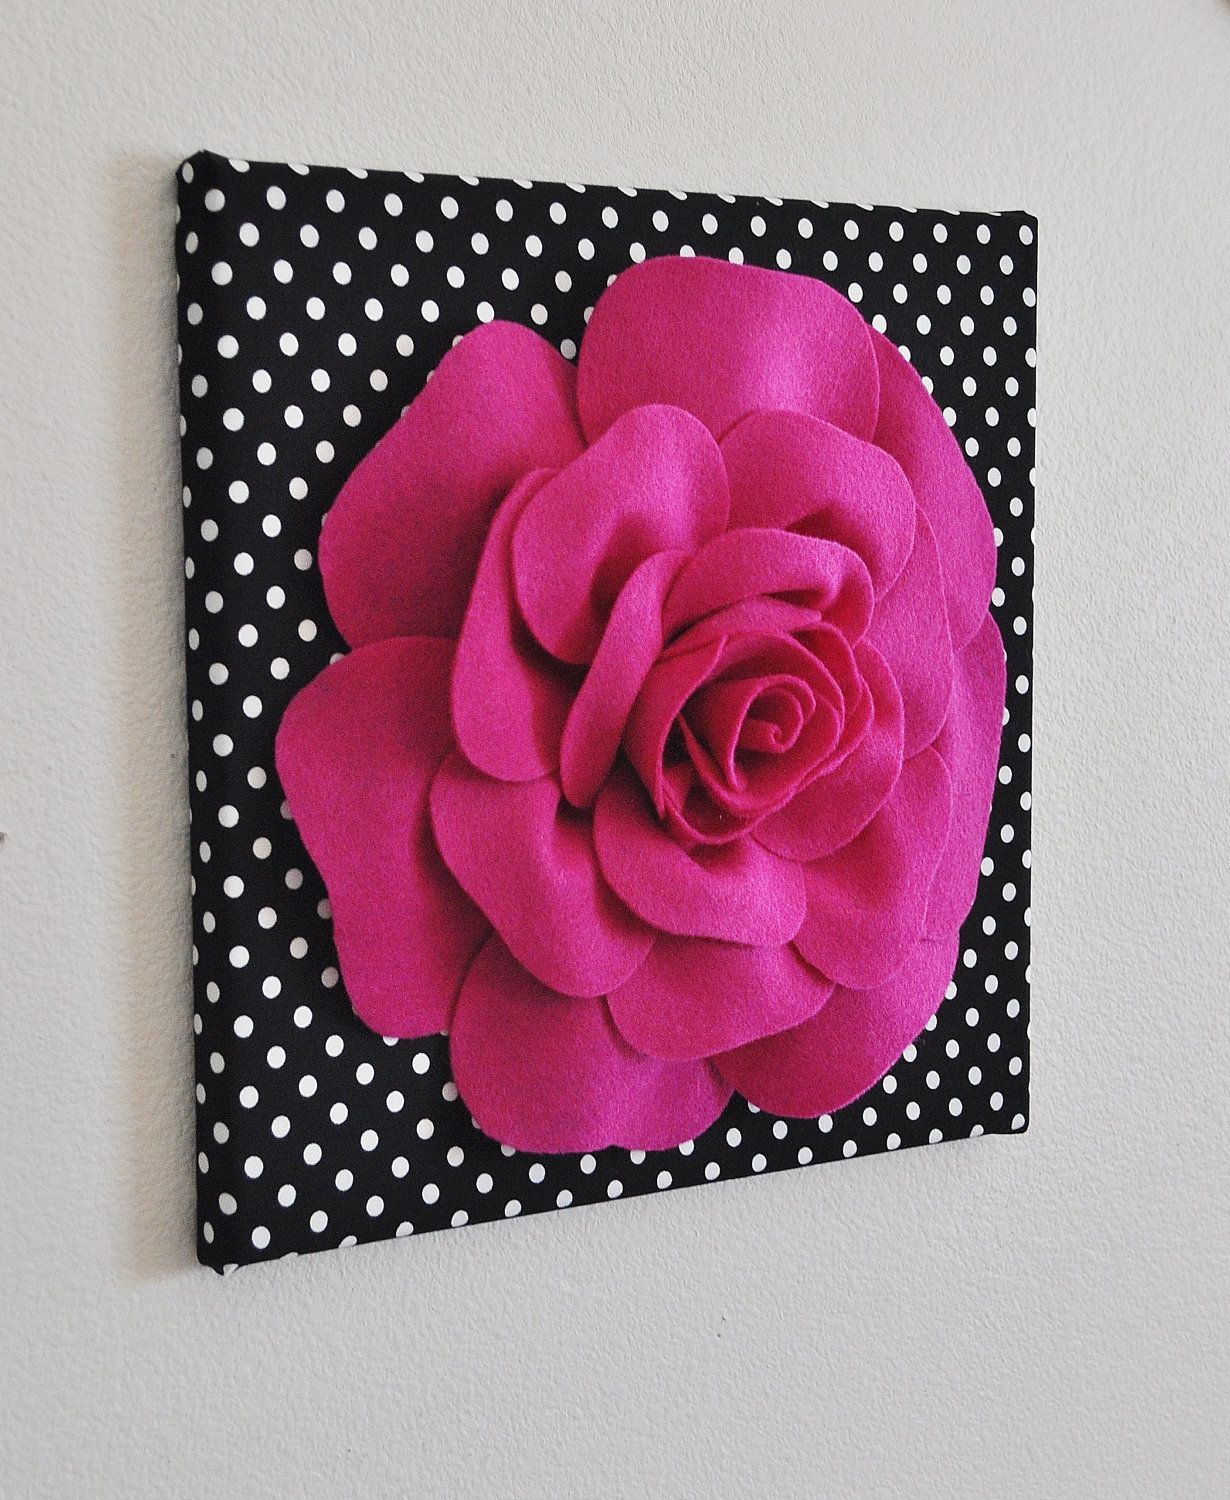 Beautiful rose wall hanging fuchsia rose on black and white polka